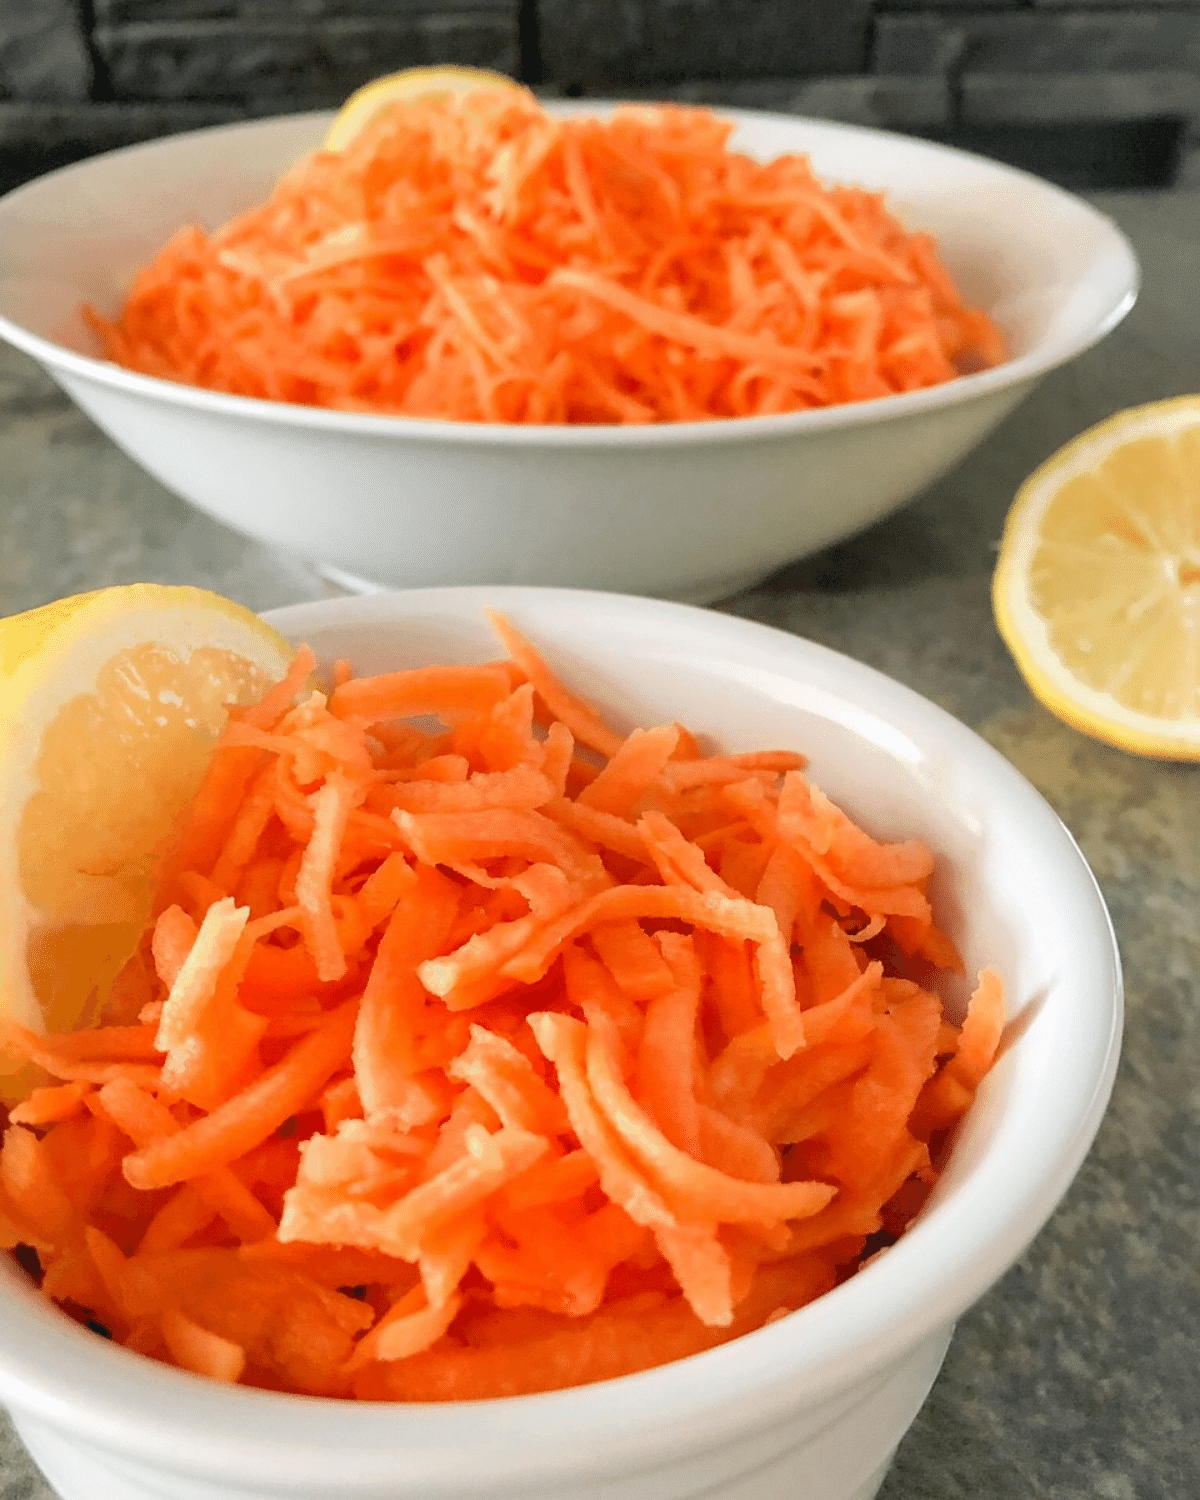 Freshly made carrot salad served in white bowls with wedges of real lemon